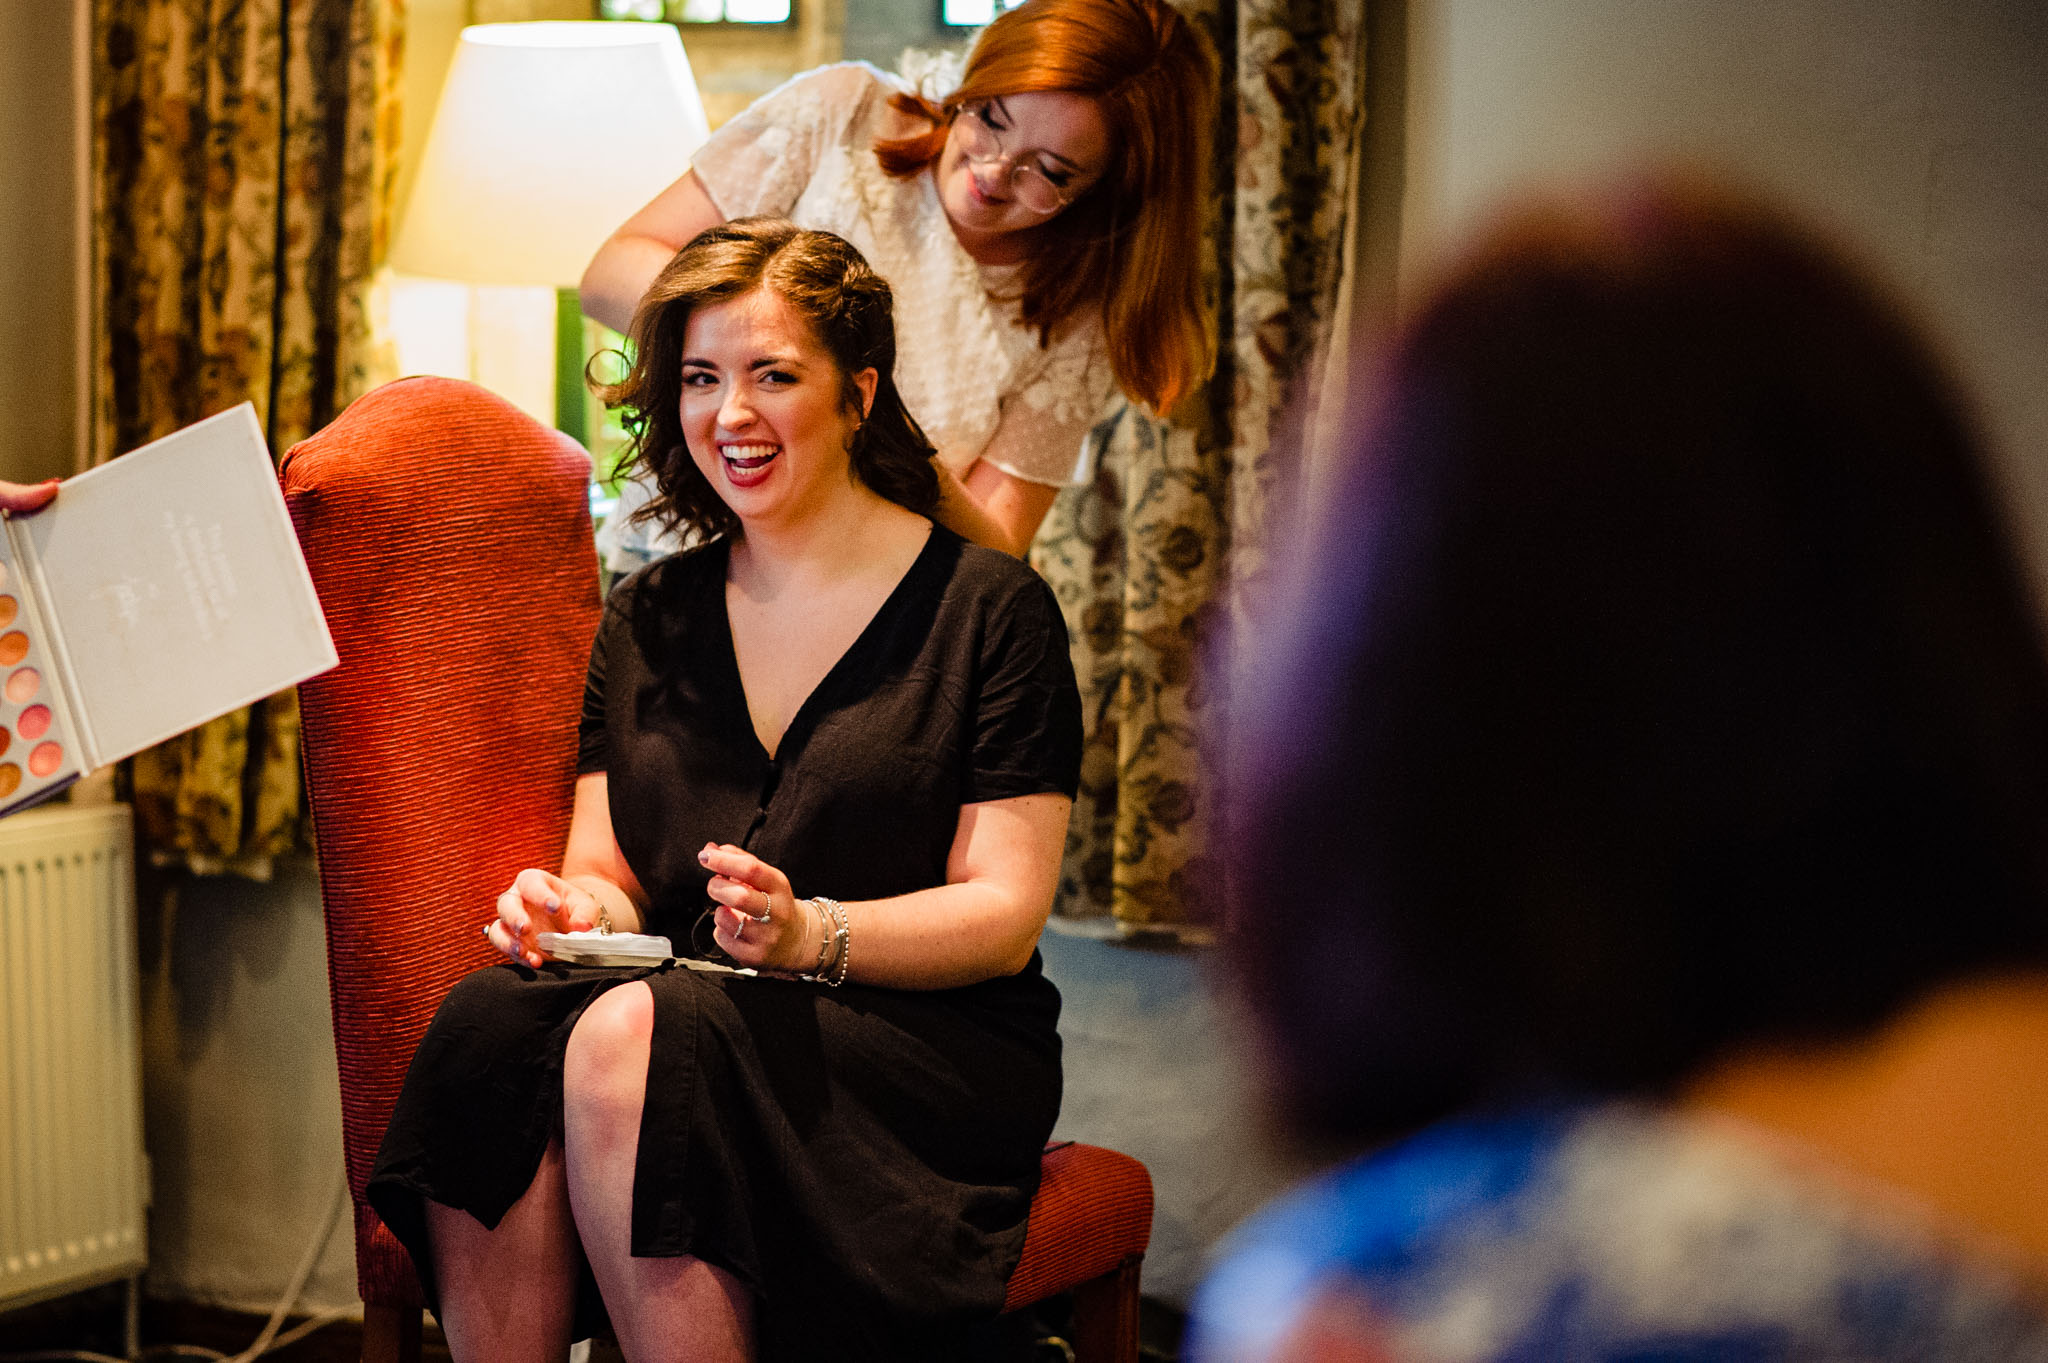 Laughter during hair and make-up